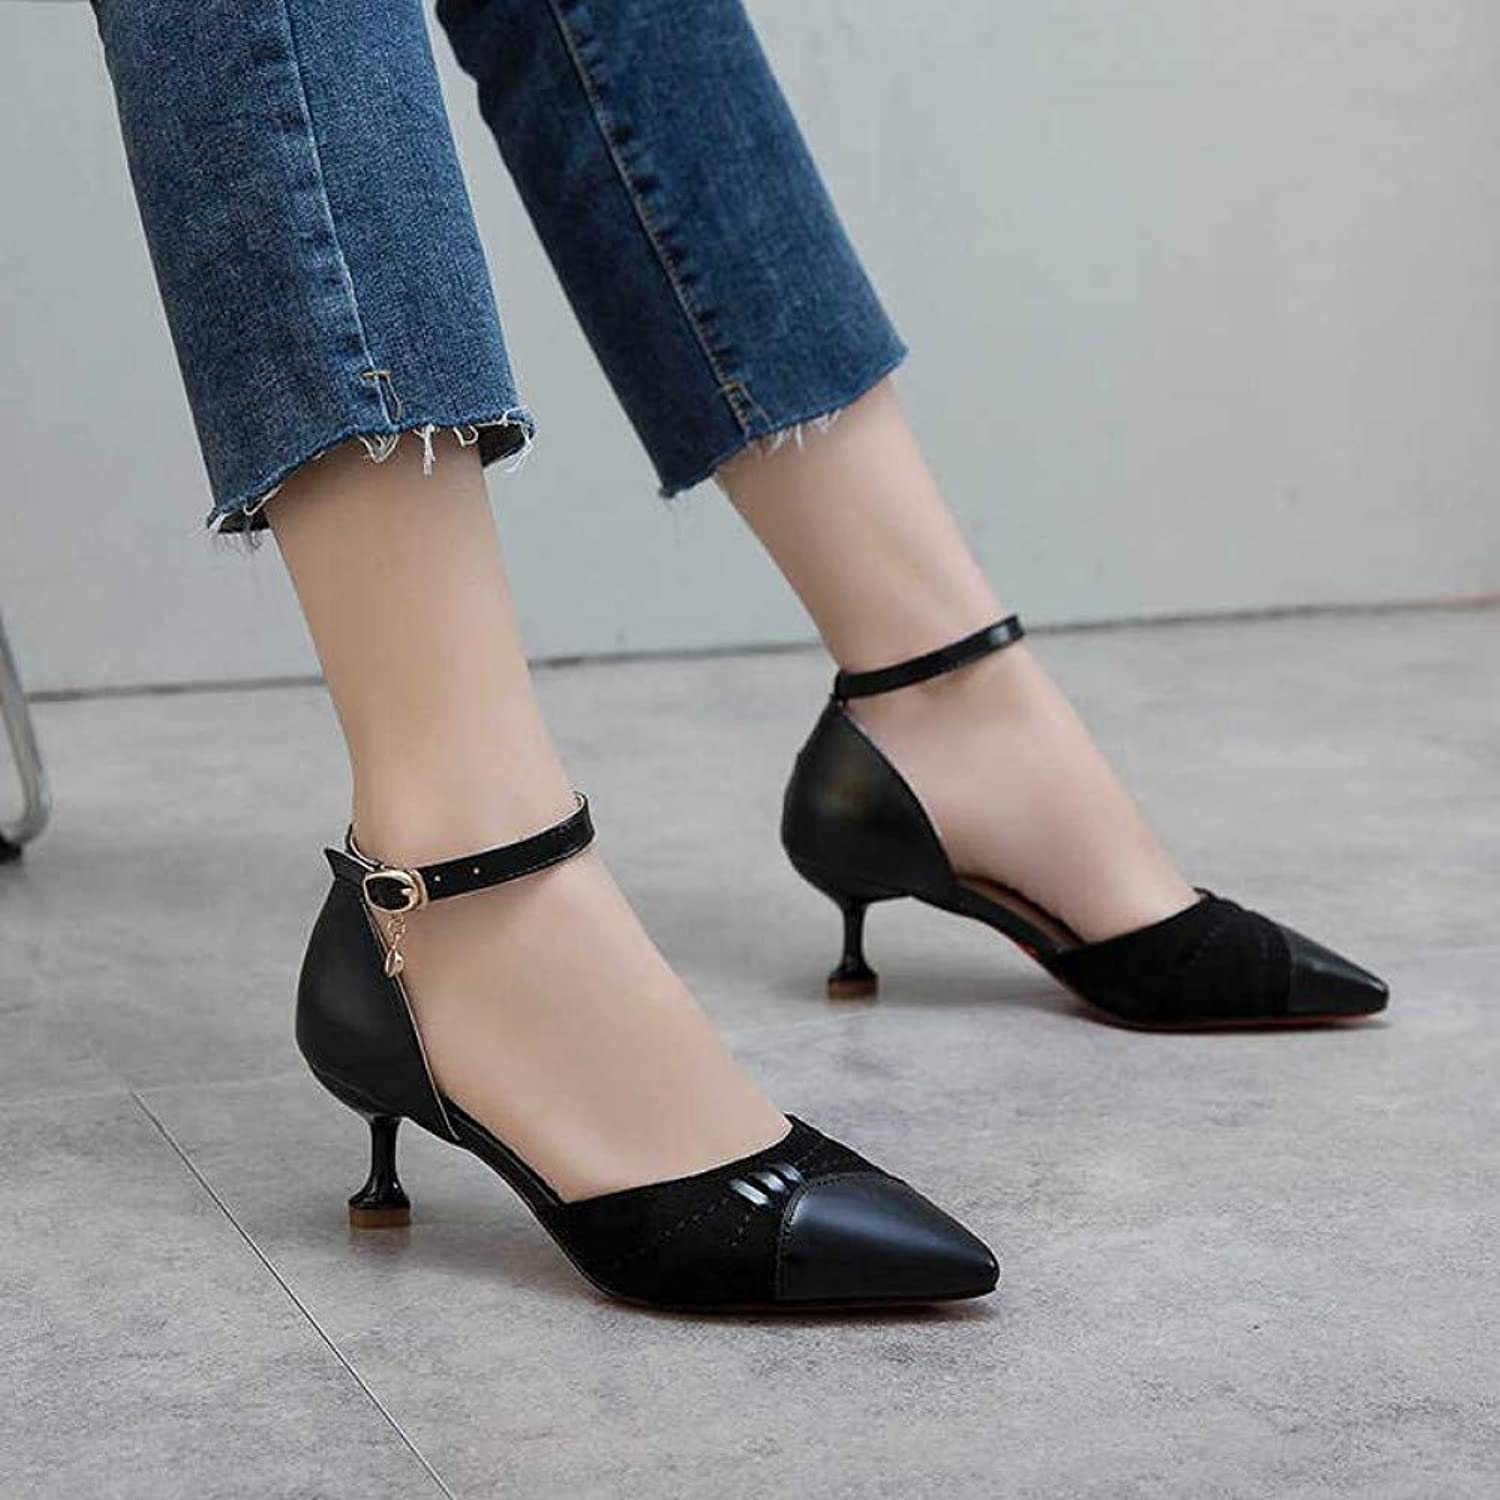 UKJSNHH igh Heels 2019 Women Pumps Mid Heel Pump Ladies Pointed Toe Casual shoes Sandals High Heels Wedding shoes Sexy Pumps Buckle Strap